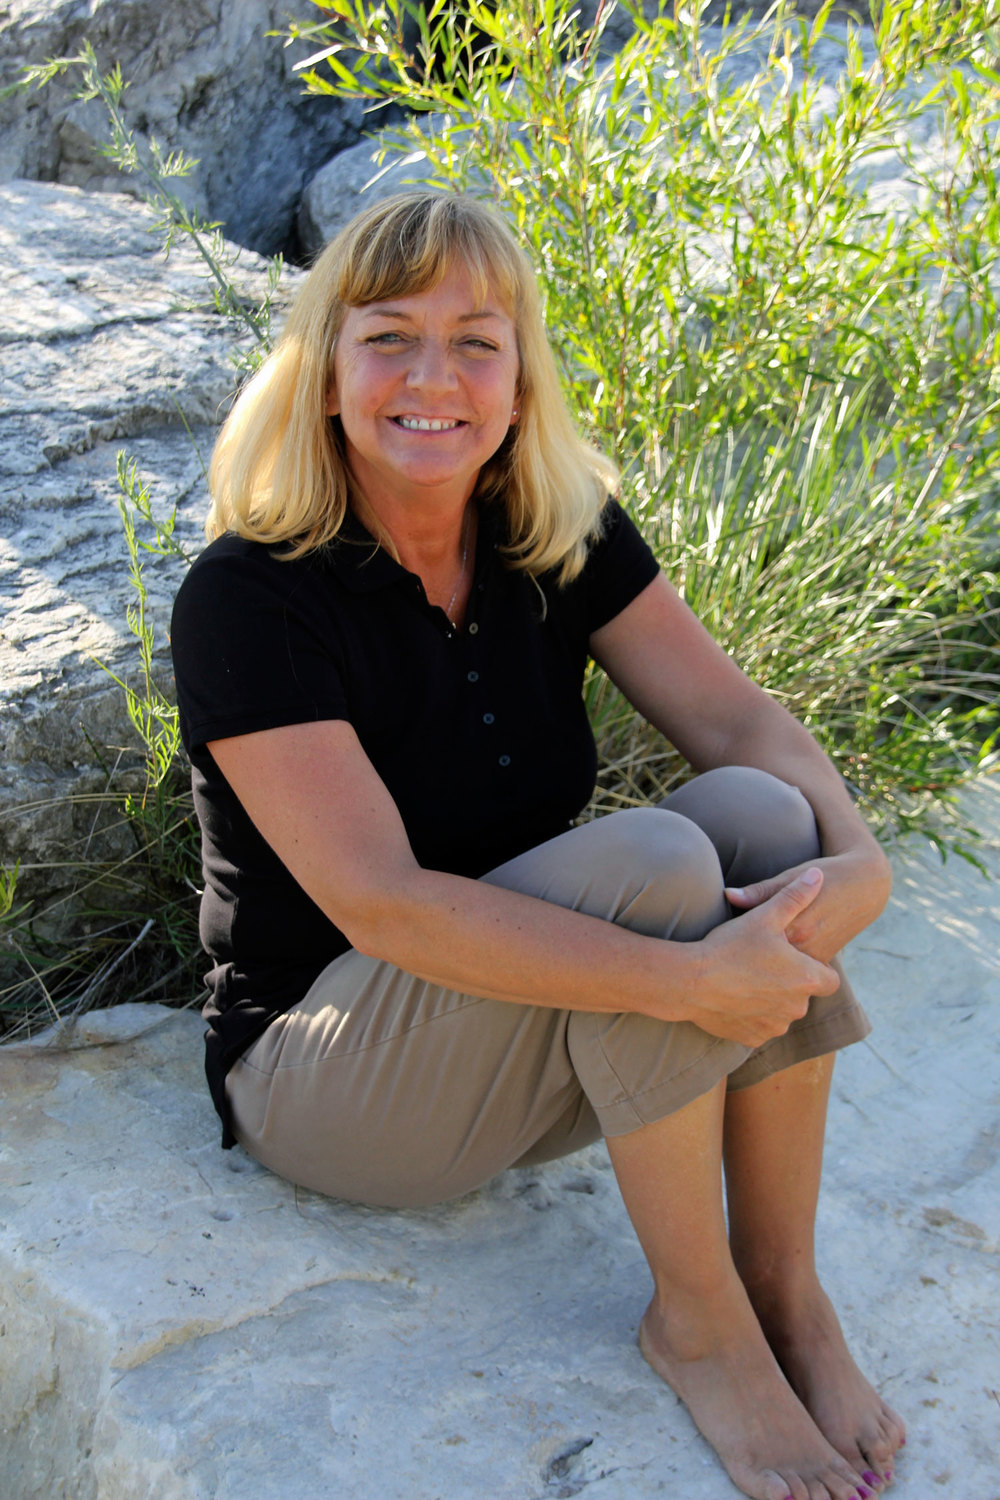 Kendra Smith, Licensed Massage Therapist at Community Chiropractic Health Center in Lake Leelanau MI.